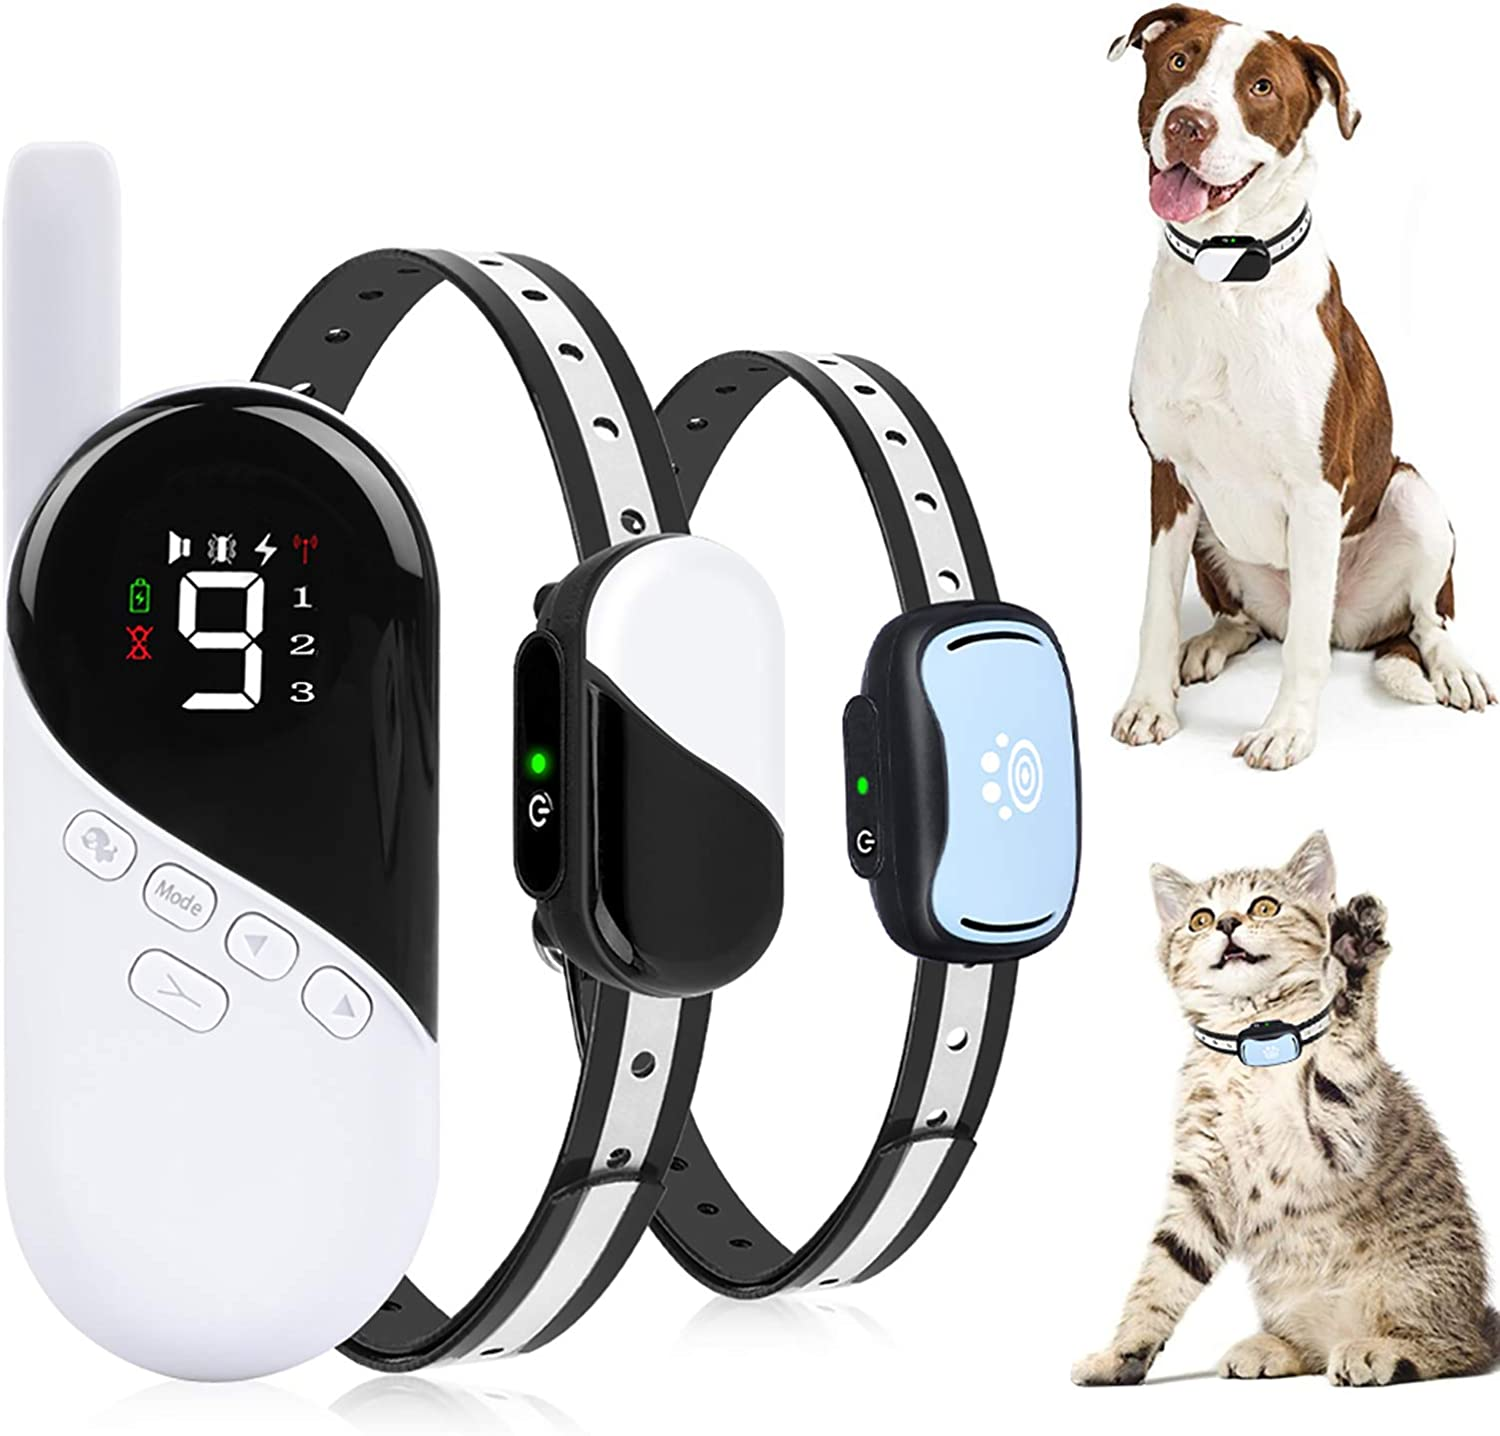 Dog Training Collar - Rechargeable Dog Shock Collar w/3 Modes, Beep, Vibration and Shock, Waterproof Pet Behaviour Training for Extra Small, Medium, Large Dogs